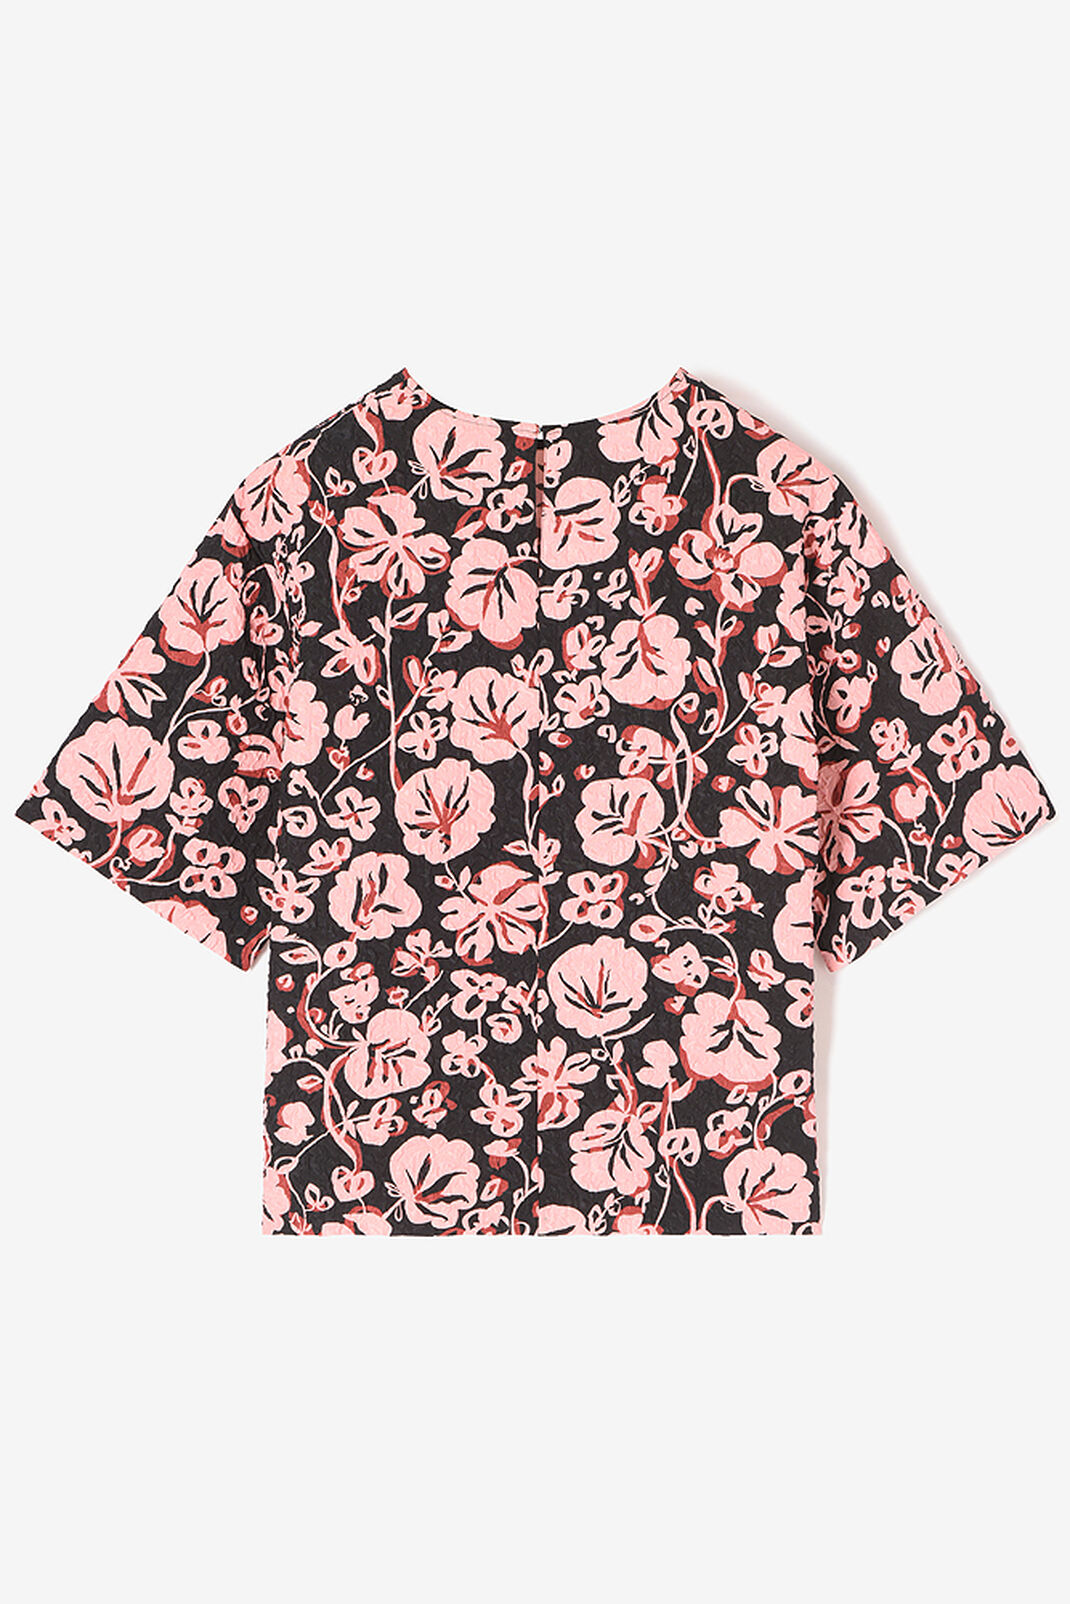 'Floral Leaf' Top, FADED PINK, KENZO